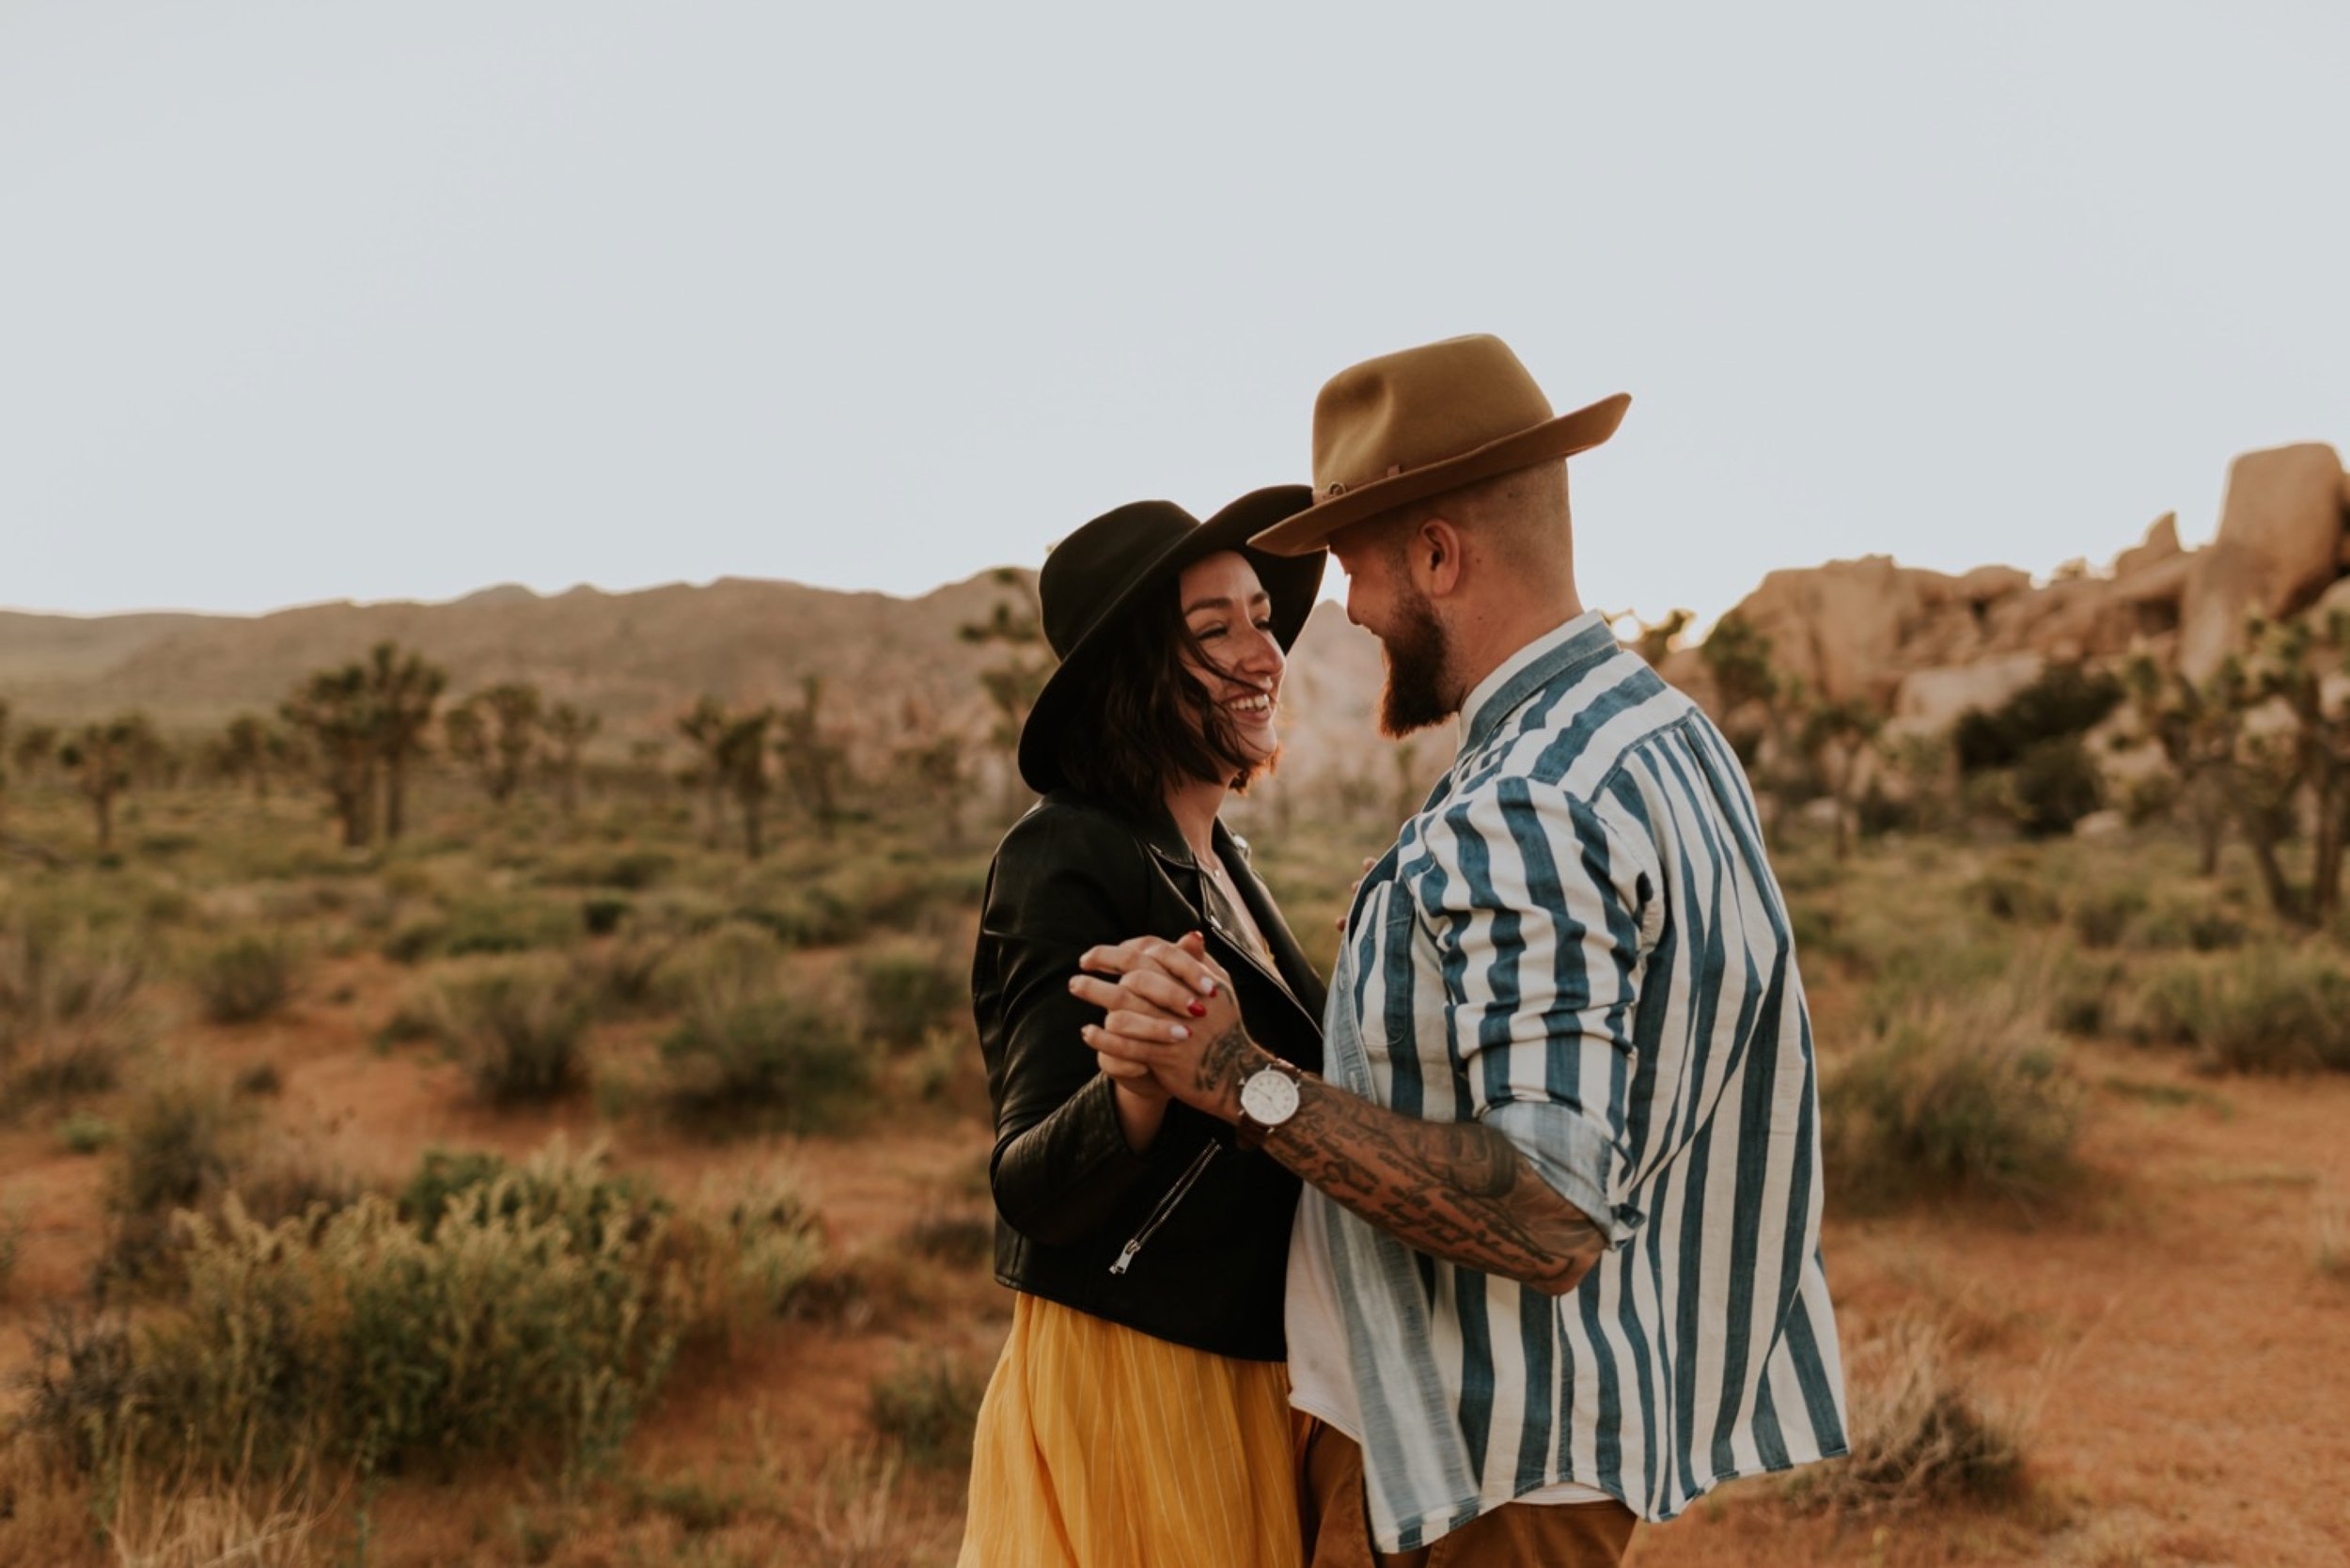 Couples Photoshoot in Joshua Tree National Park   Carrie Rogers Photography   Joshua Tree Engagement Session   Trendy Outfit Ideas for Engagement Photos   Joshua Tree Wedding Photographer